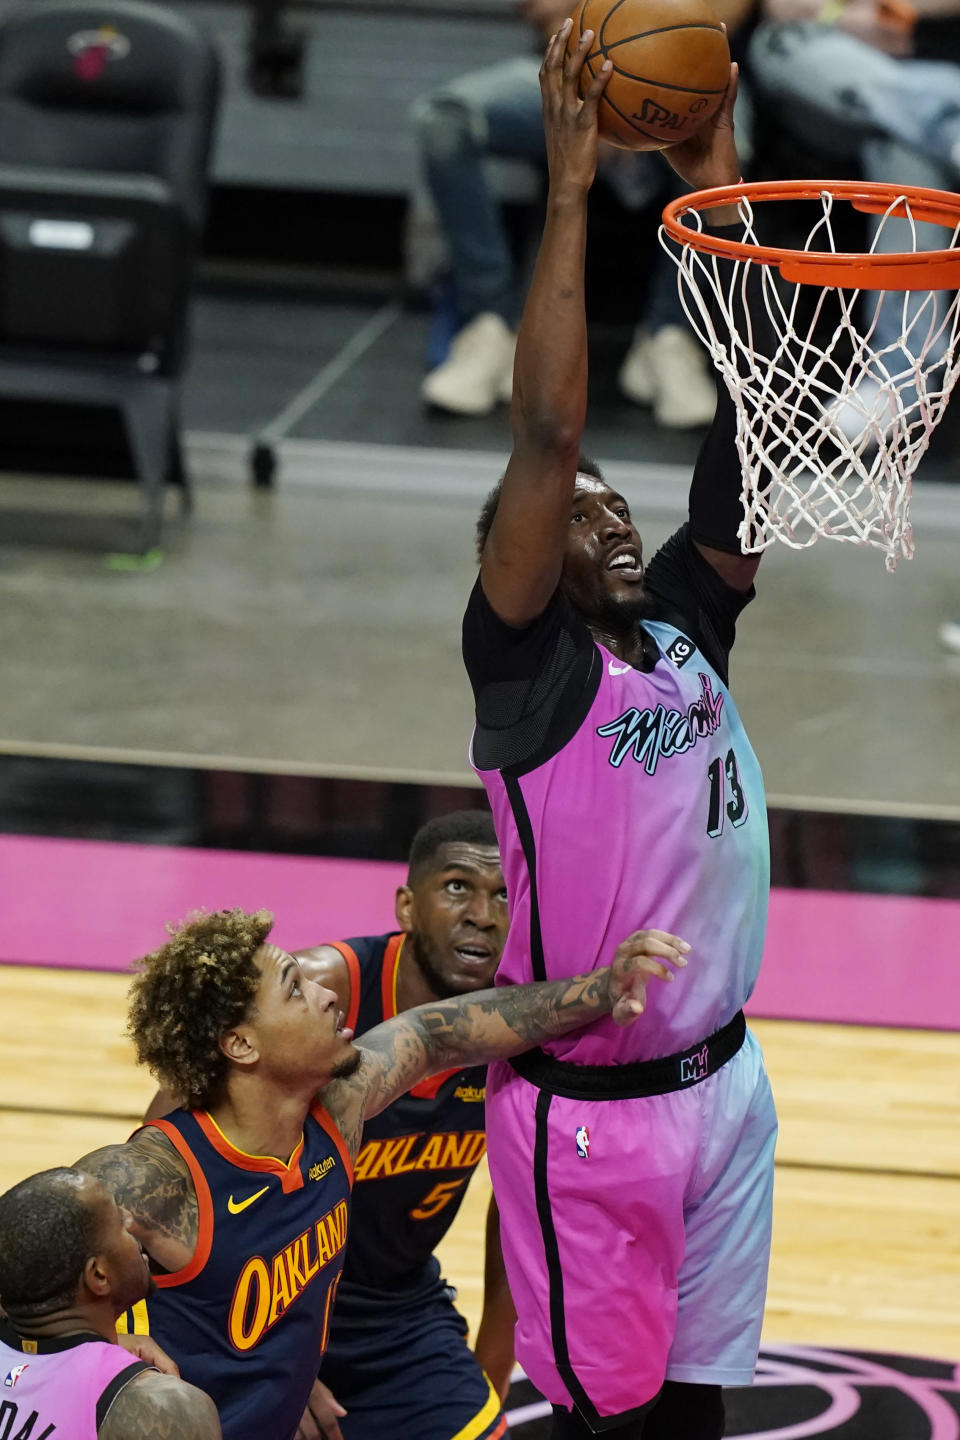 Miami Heat center Bam Adebayo (13) dunks the ball over Golden State Warriors center Kevon Looney (5) and guard Kelly Oubre Jr., during the second half of an NBA basketball game, Thursday, April 1, 2021, in Miami. (AP Photo/Marta Lavandier)